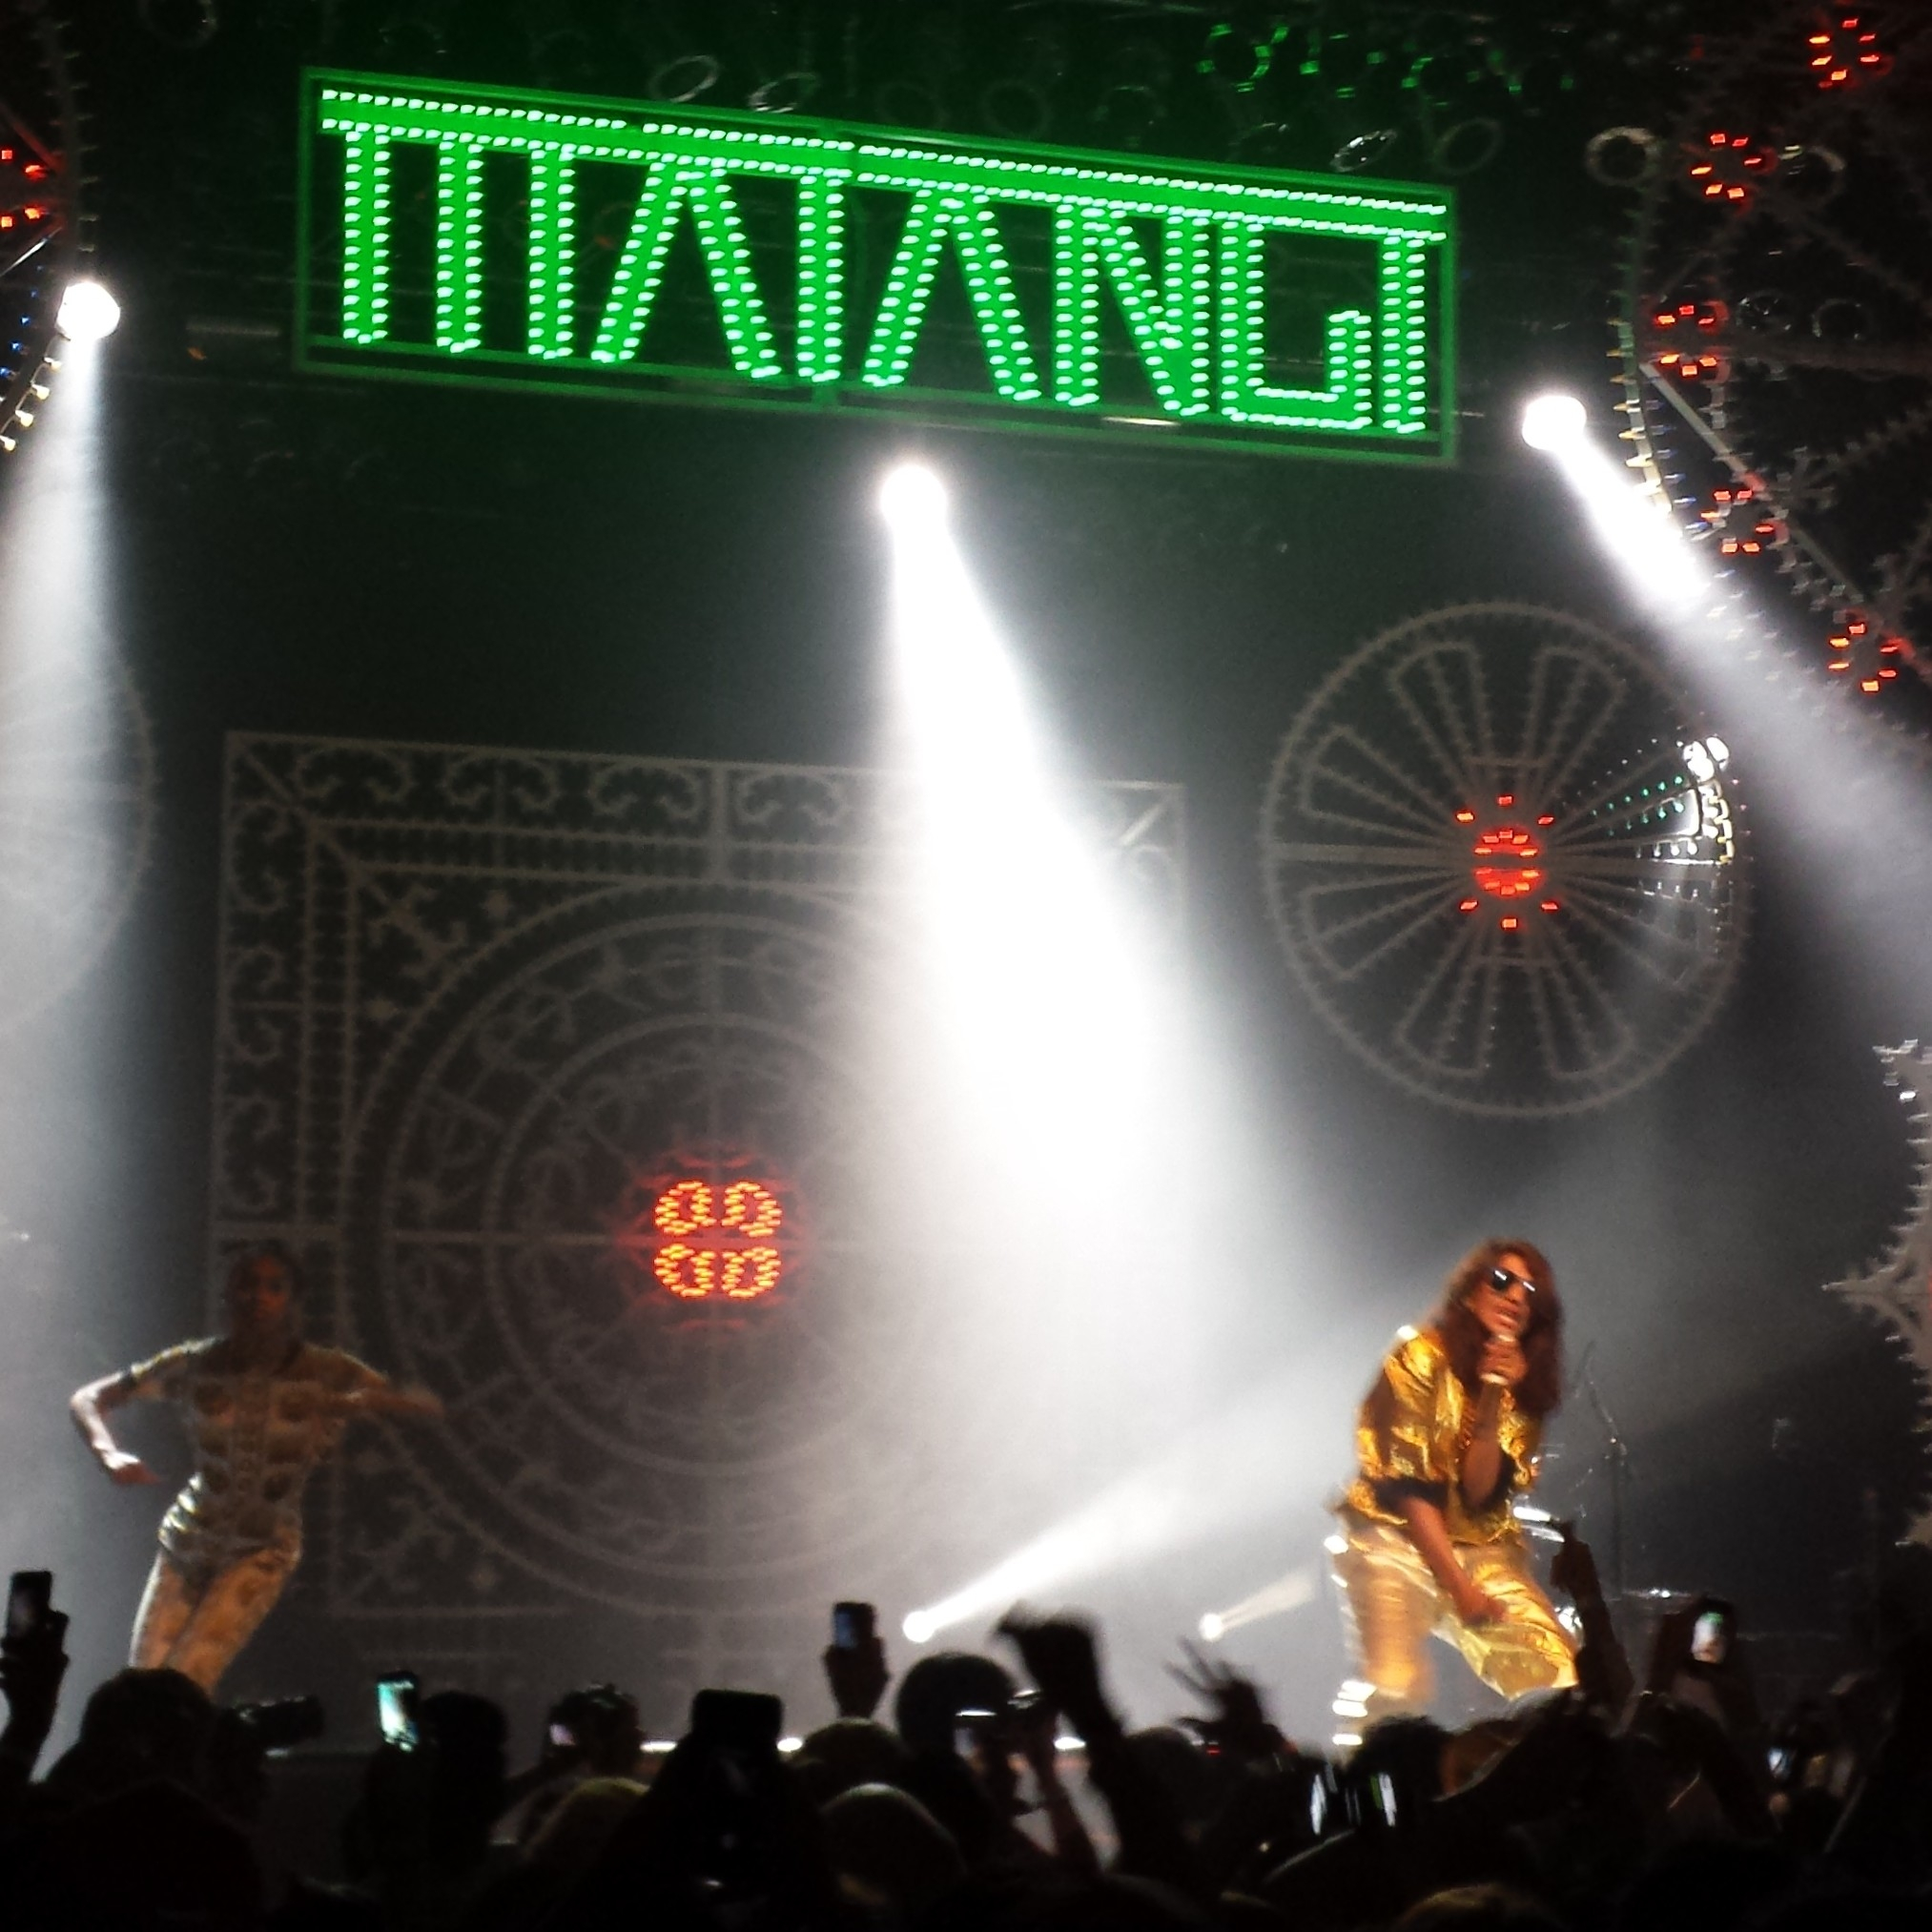 M.I.A. Matangi Tour at Terminal 5, NYC